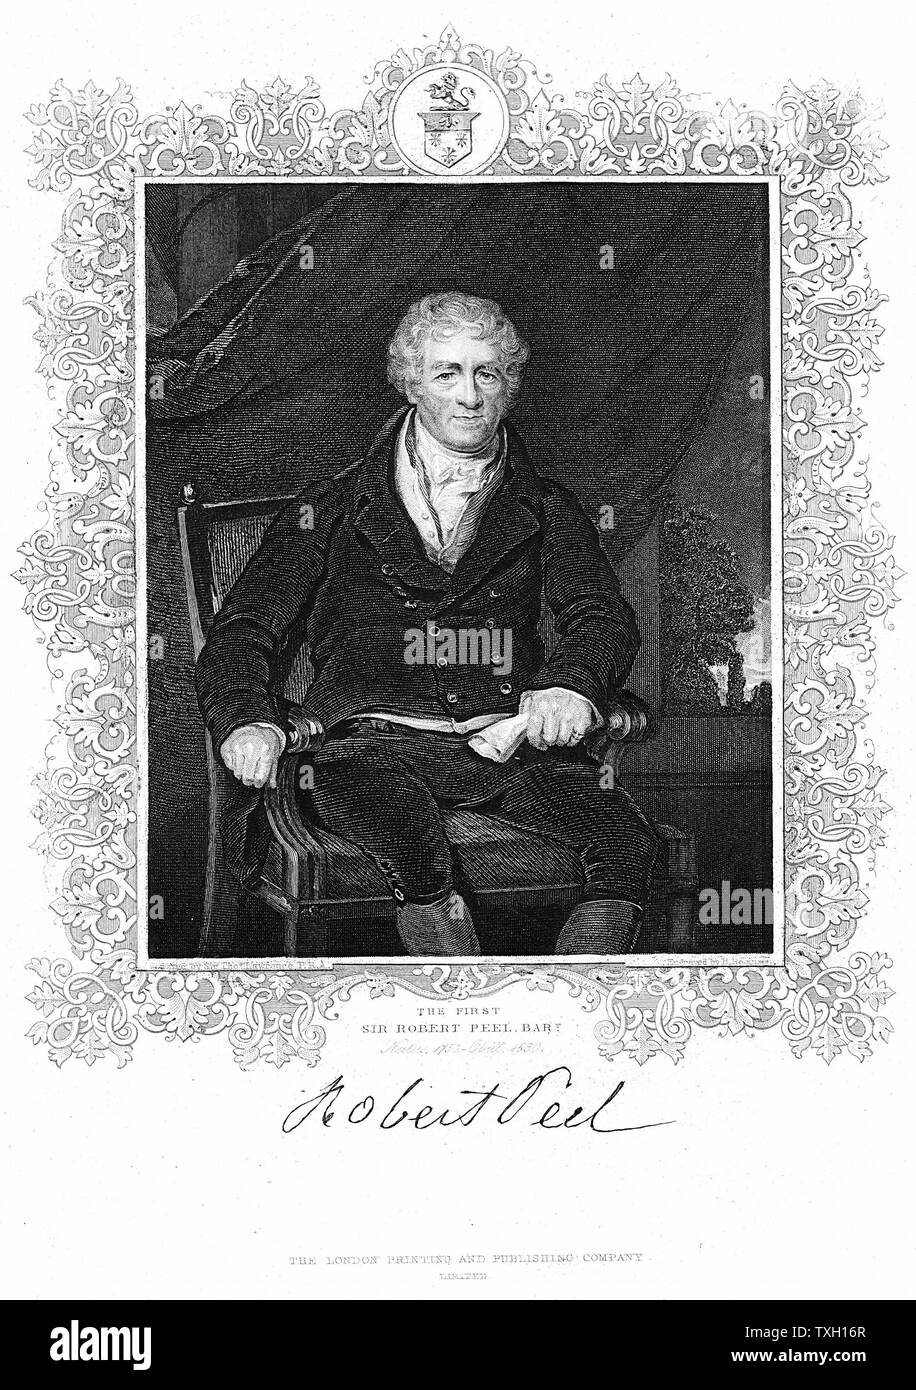 Robert Peel (1750-1830) British industrialist and father of Robert Peel the statesman. Cotton Mills.  Engraving after portrait Lawrence - Stock Image